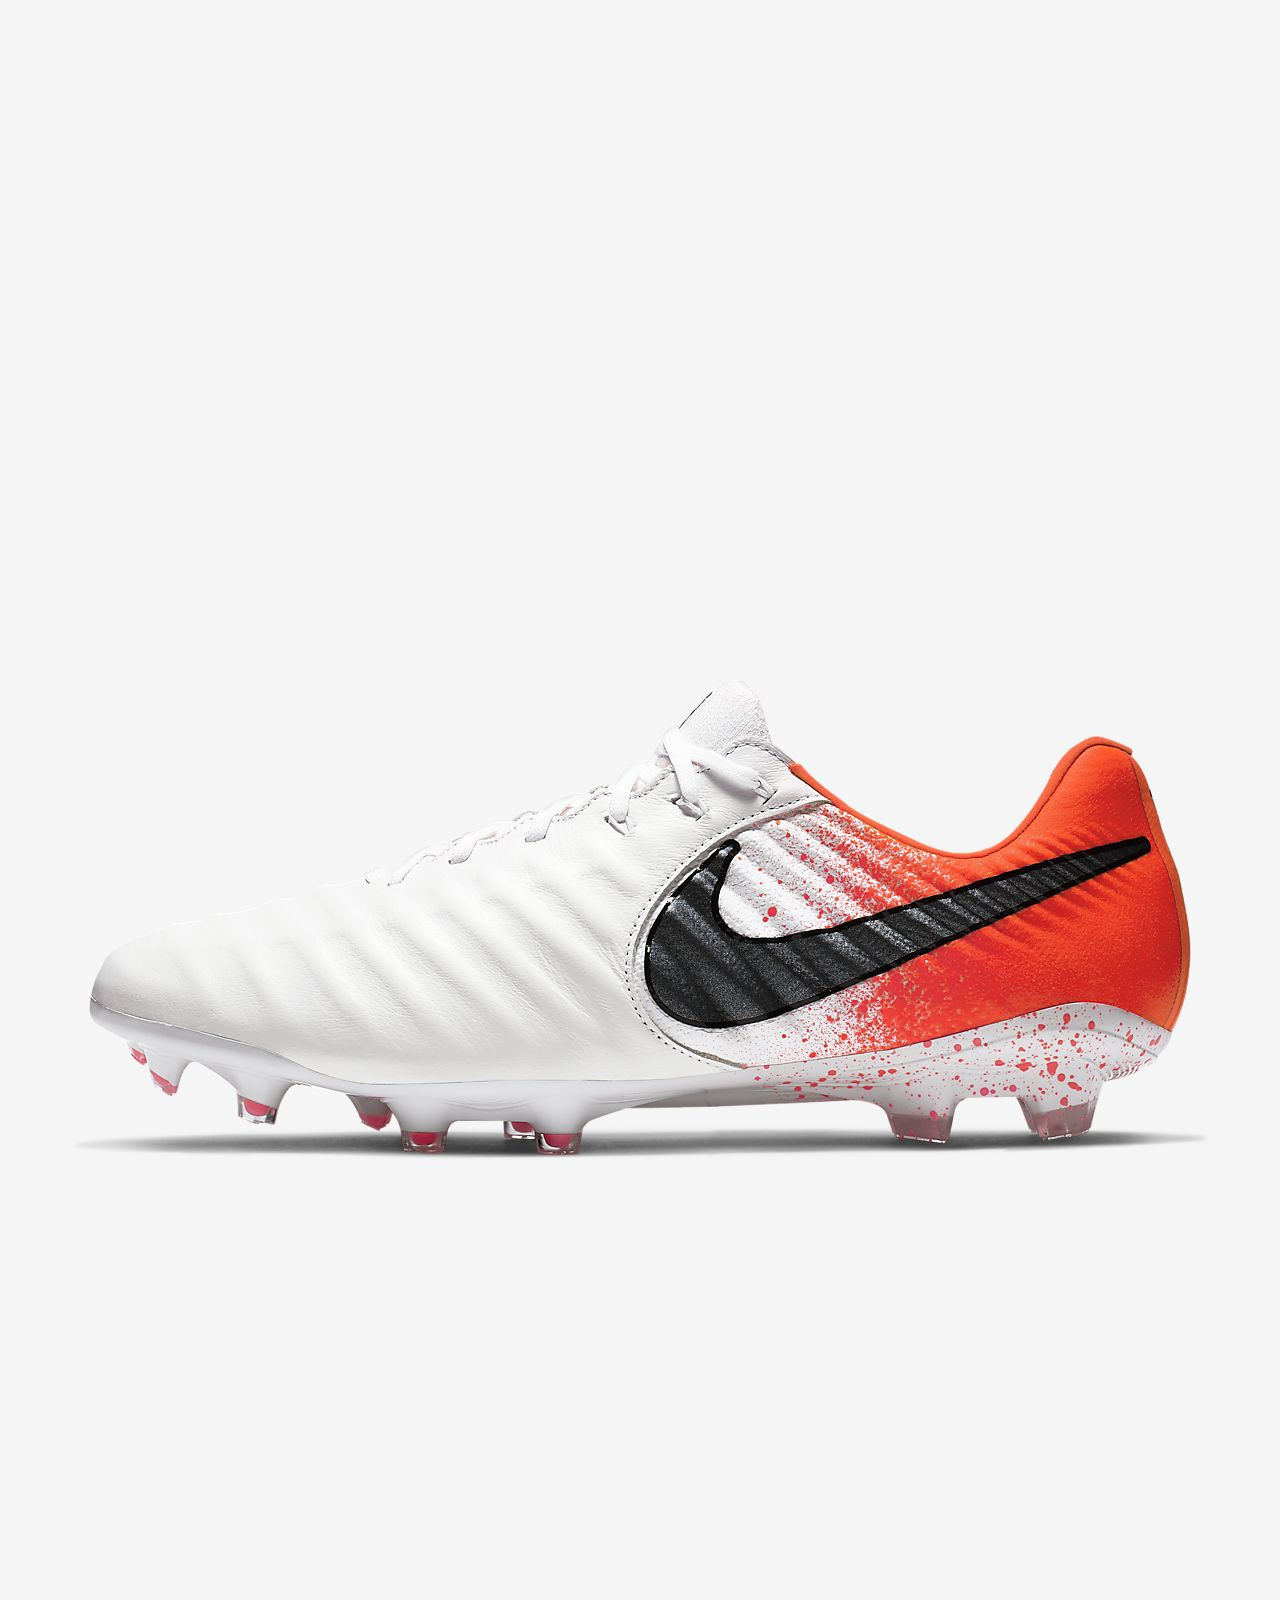 Nike Tiempo Legend 7 Elite FG Firm-Ground Soccer Cleat